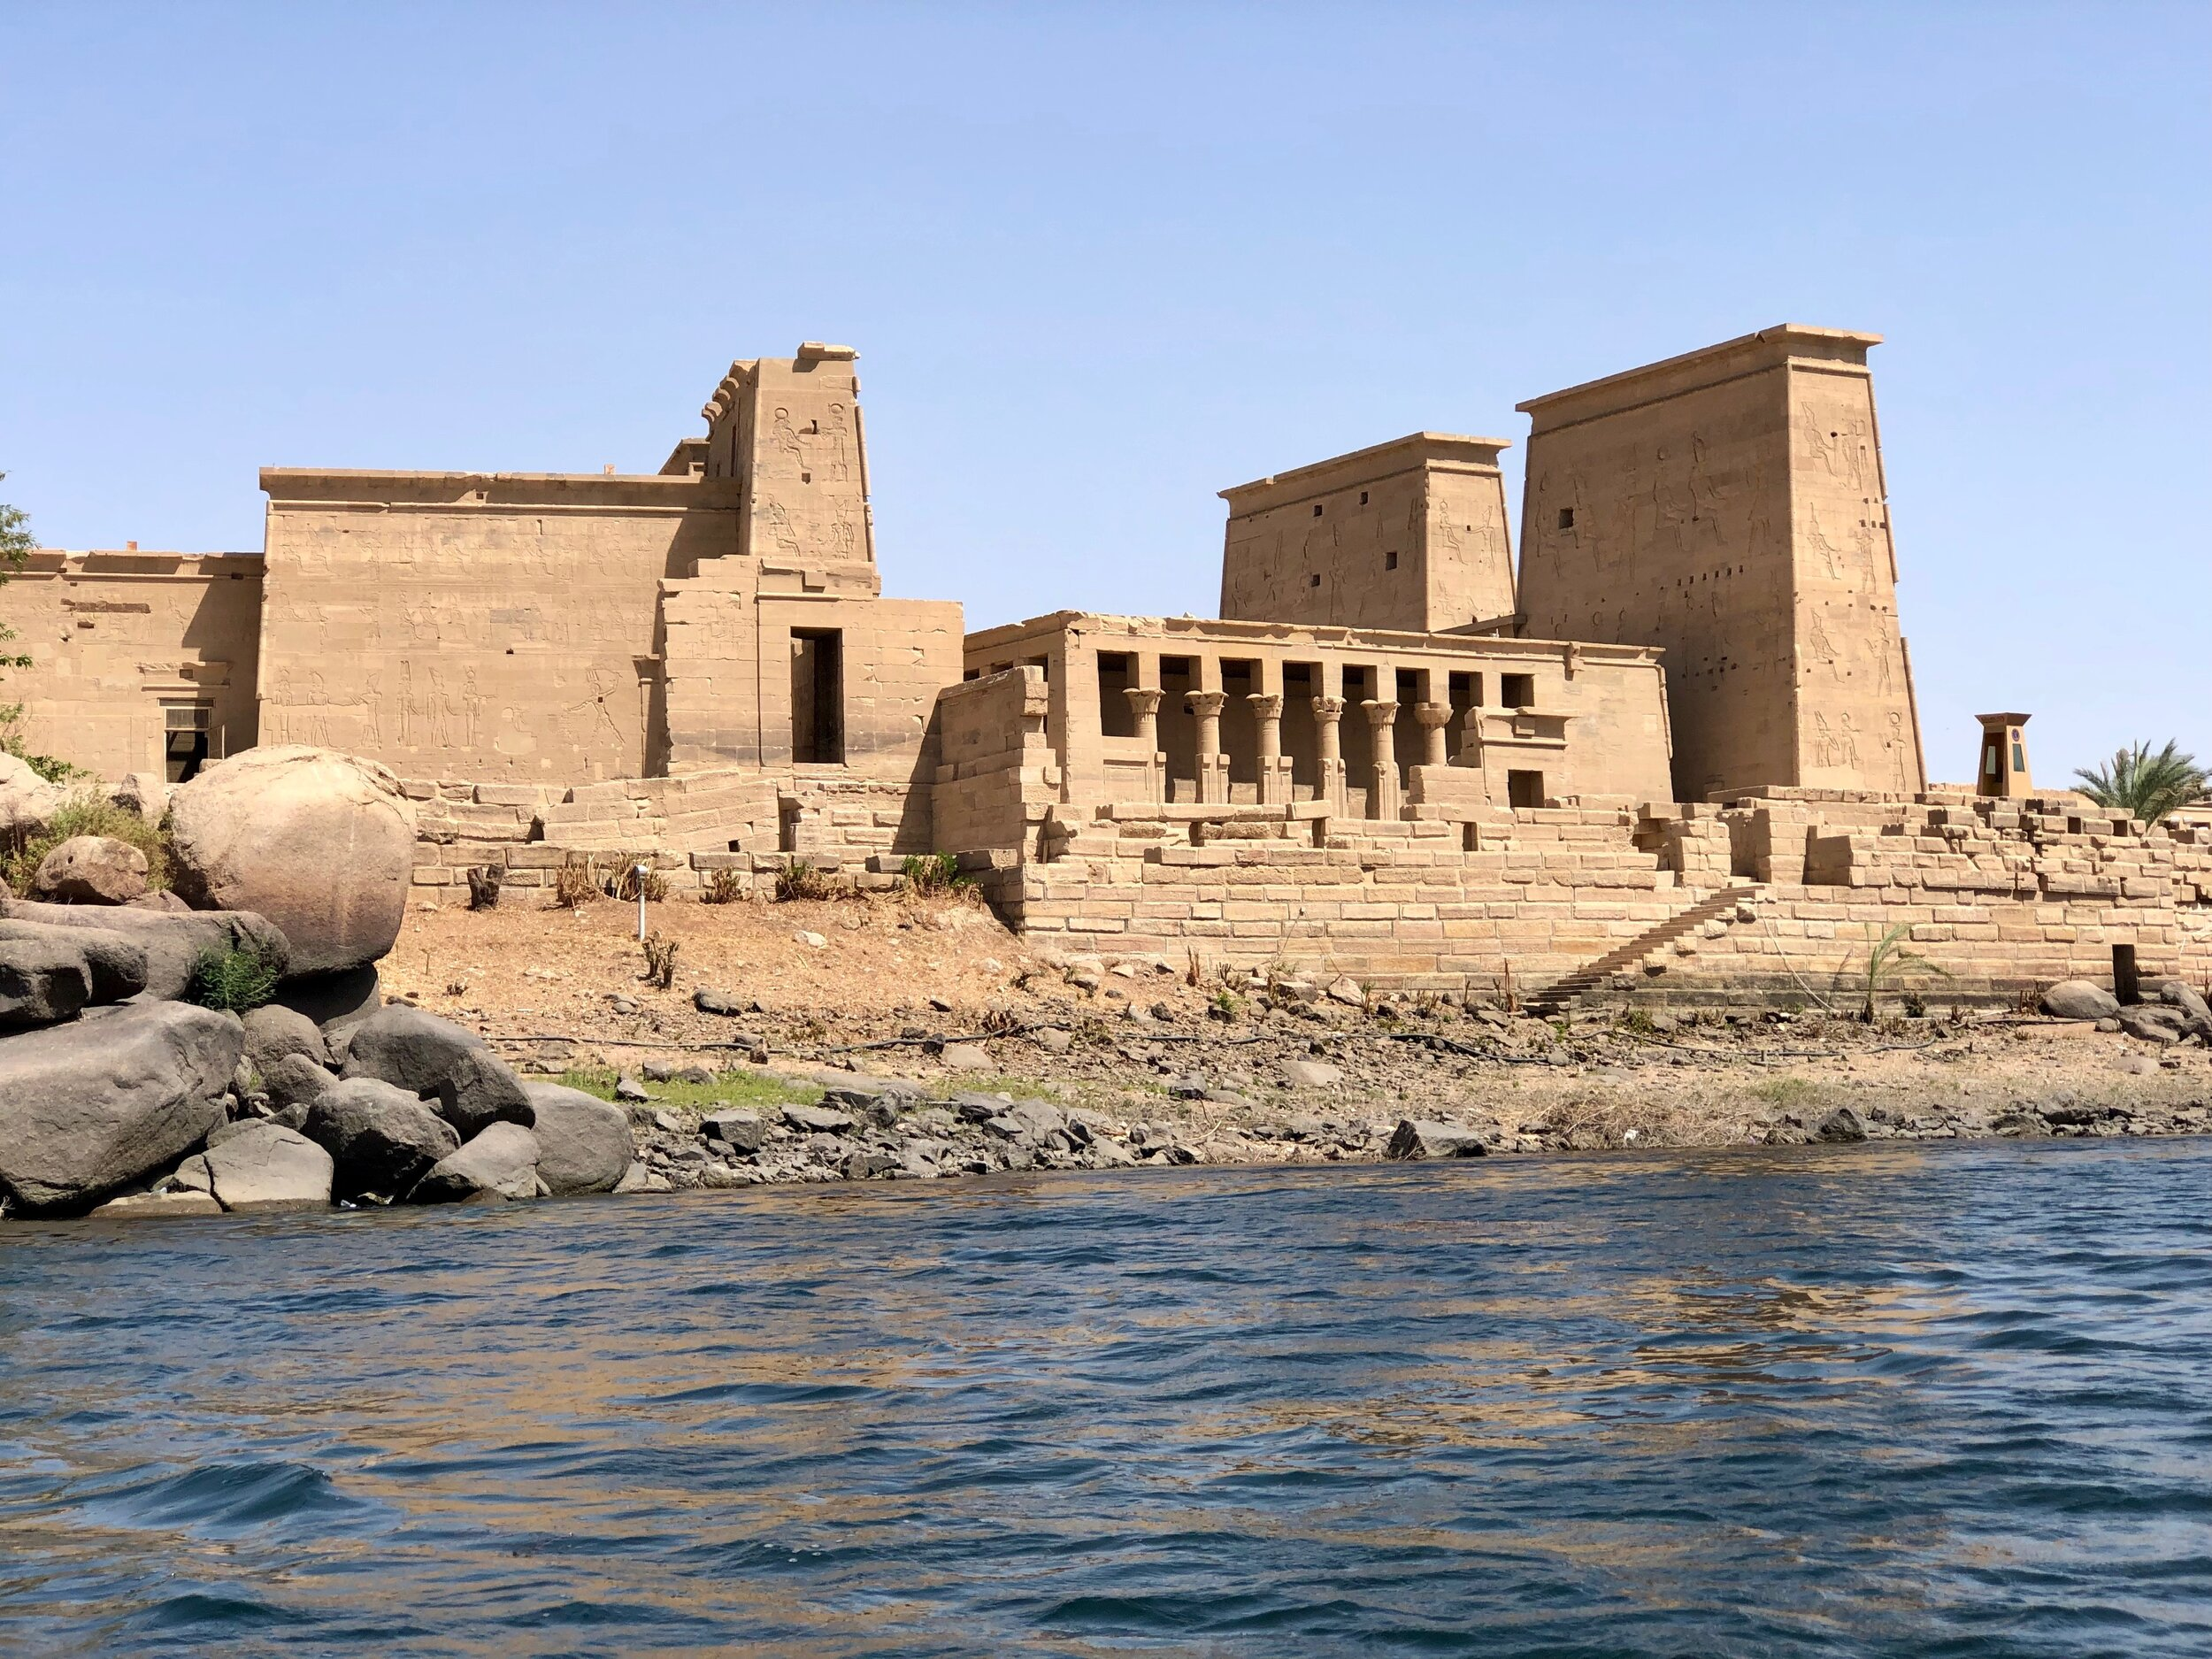 When you visit Aswan, be sure to explore this island temple, one of the latest and best preserved in Egypt